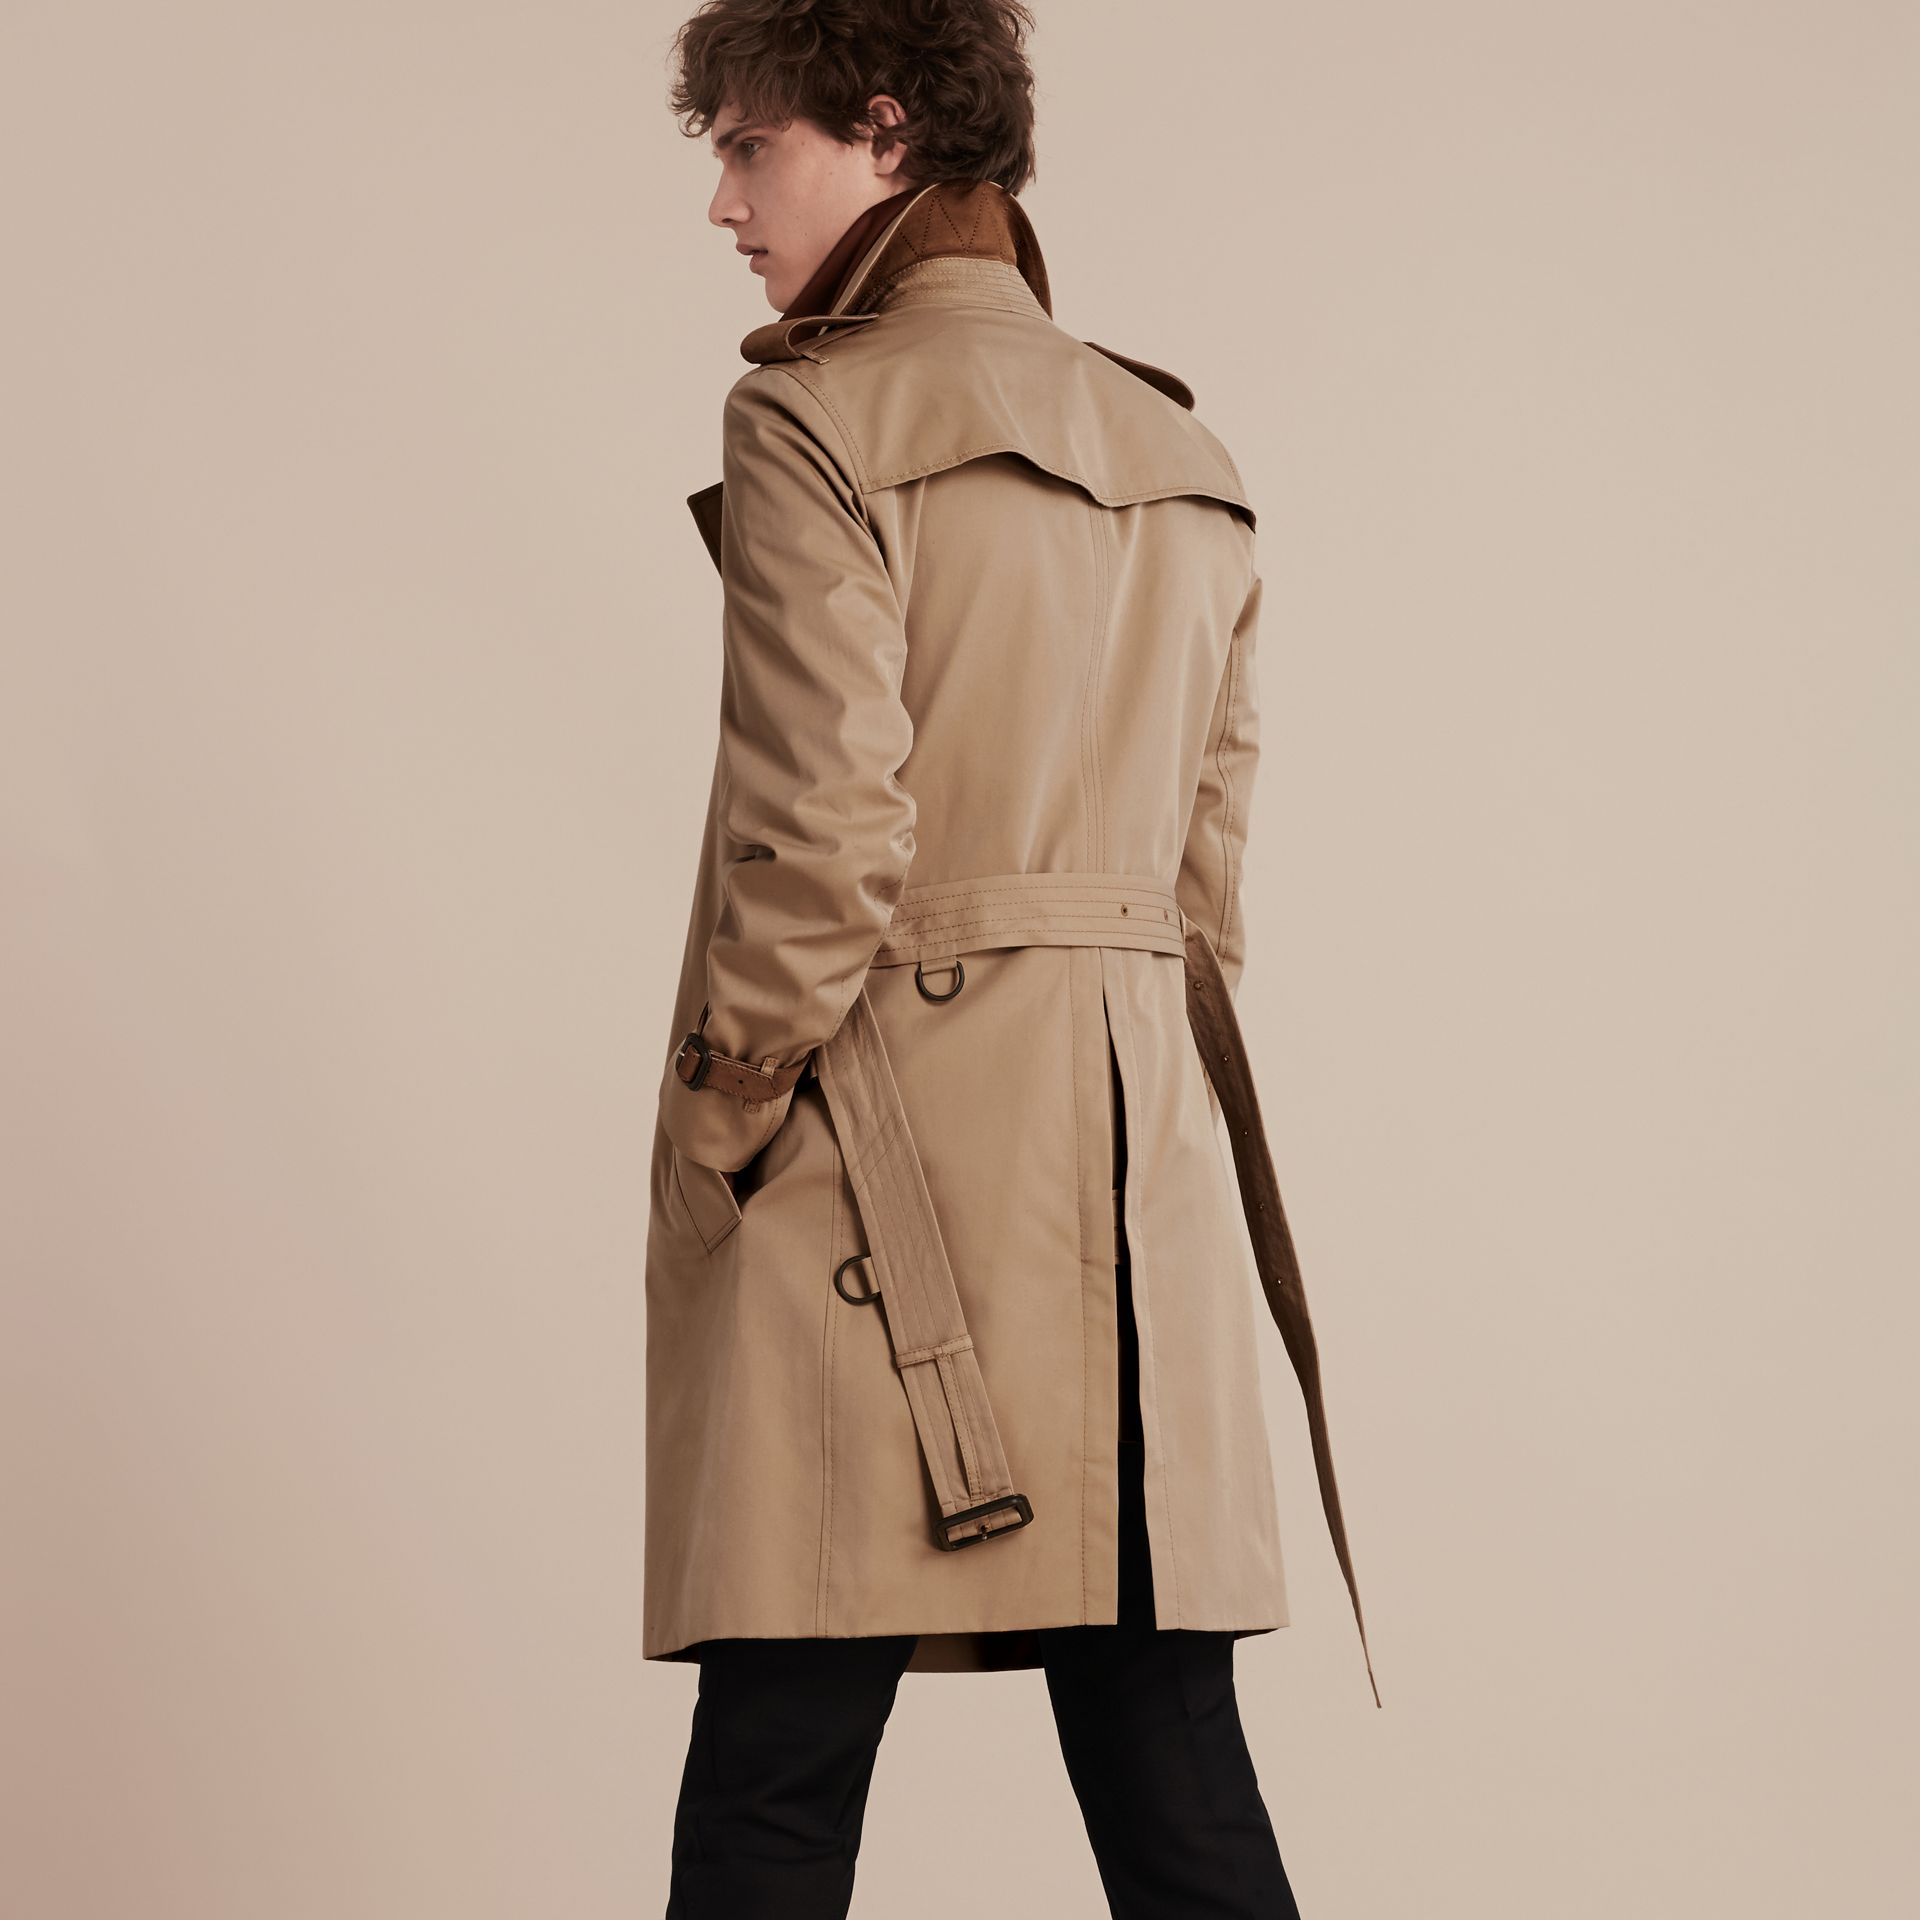 Honey Leather-trimmed Cotton Trench Coat - gallery image 3